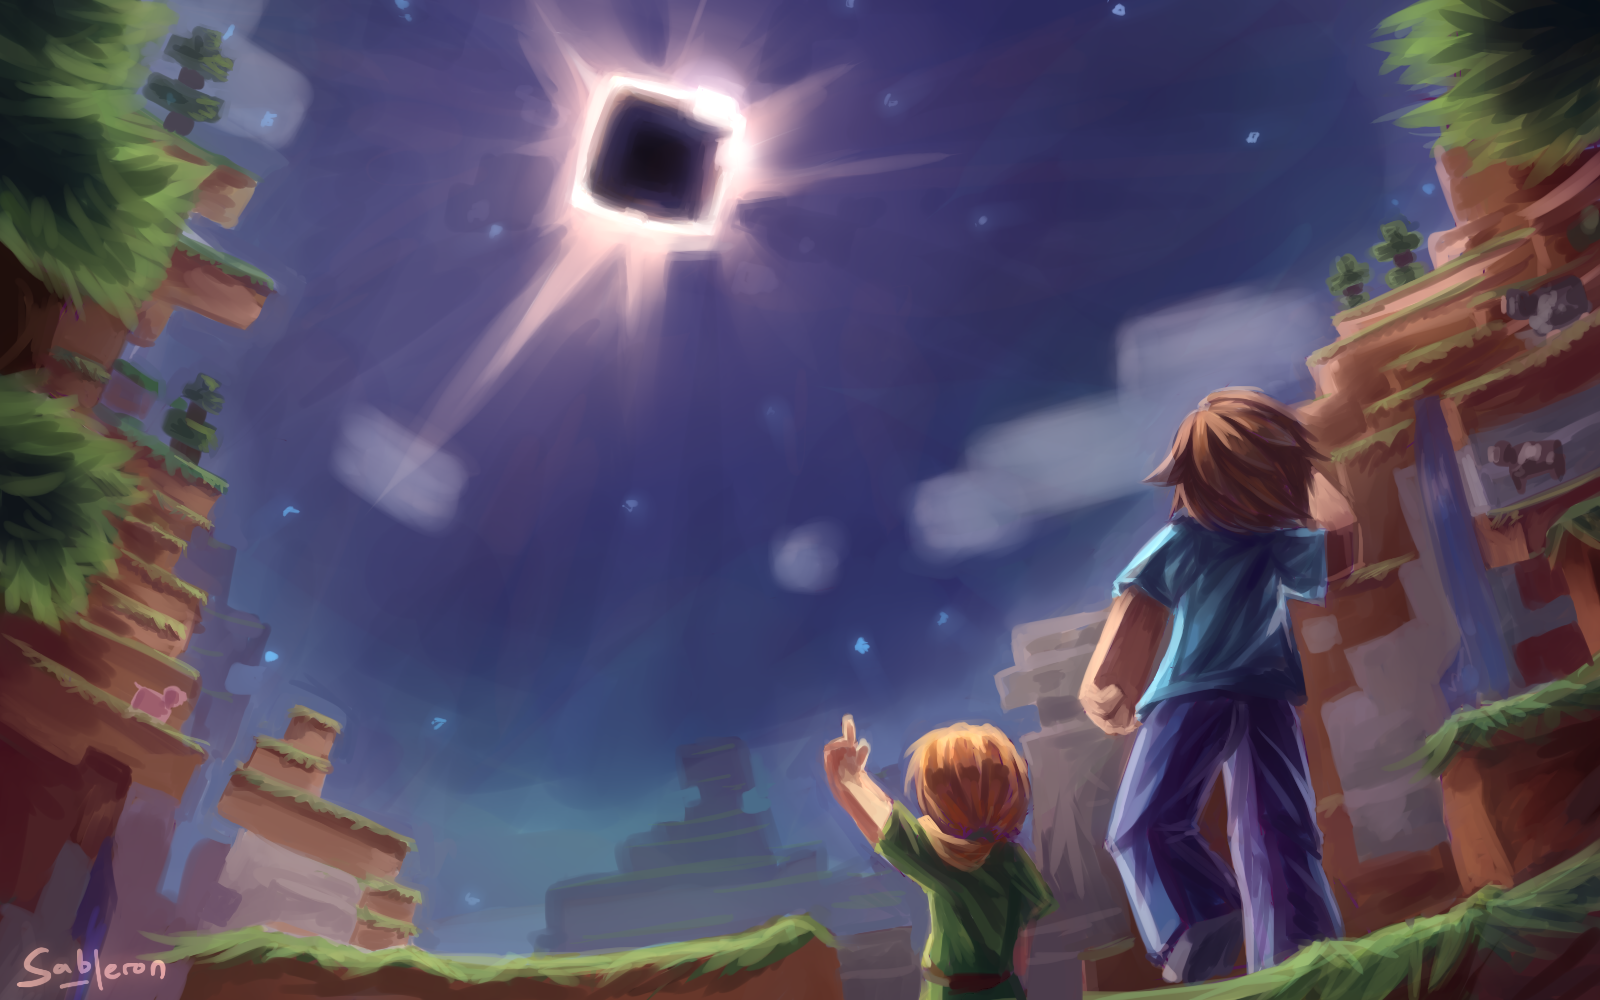 A painting I made for the 2017 Solar Eclipse.